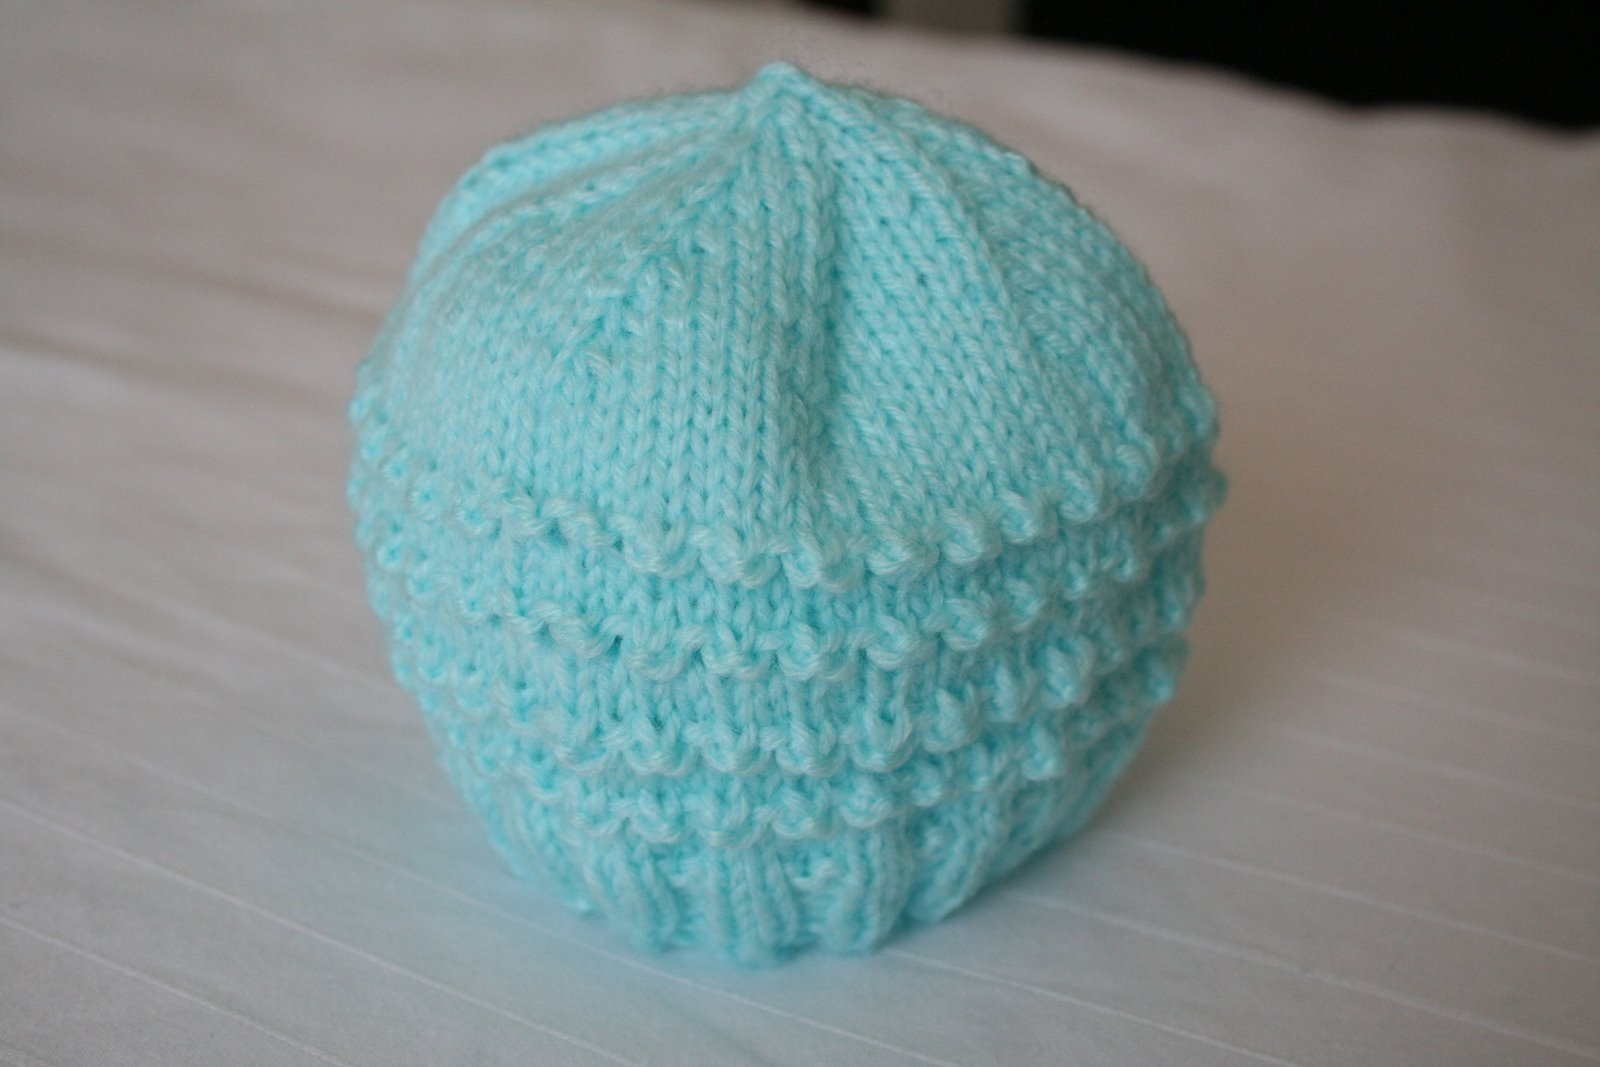 Knitting Pattern Preemie Baby Hat : Free Preemie Knitting Patterns images